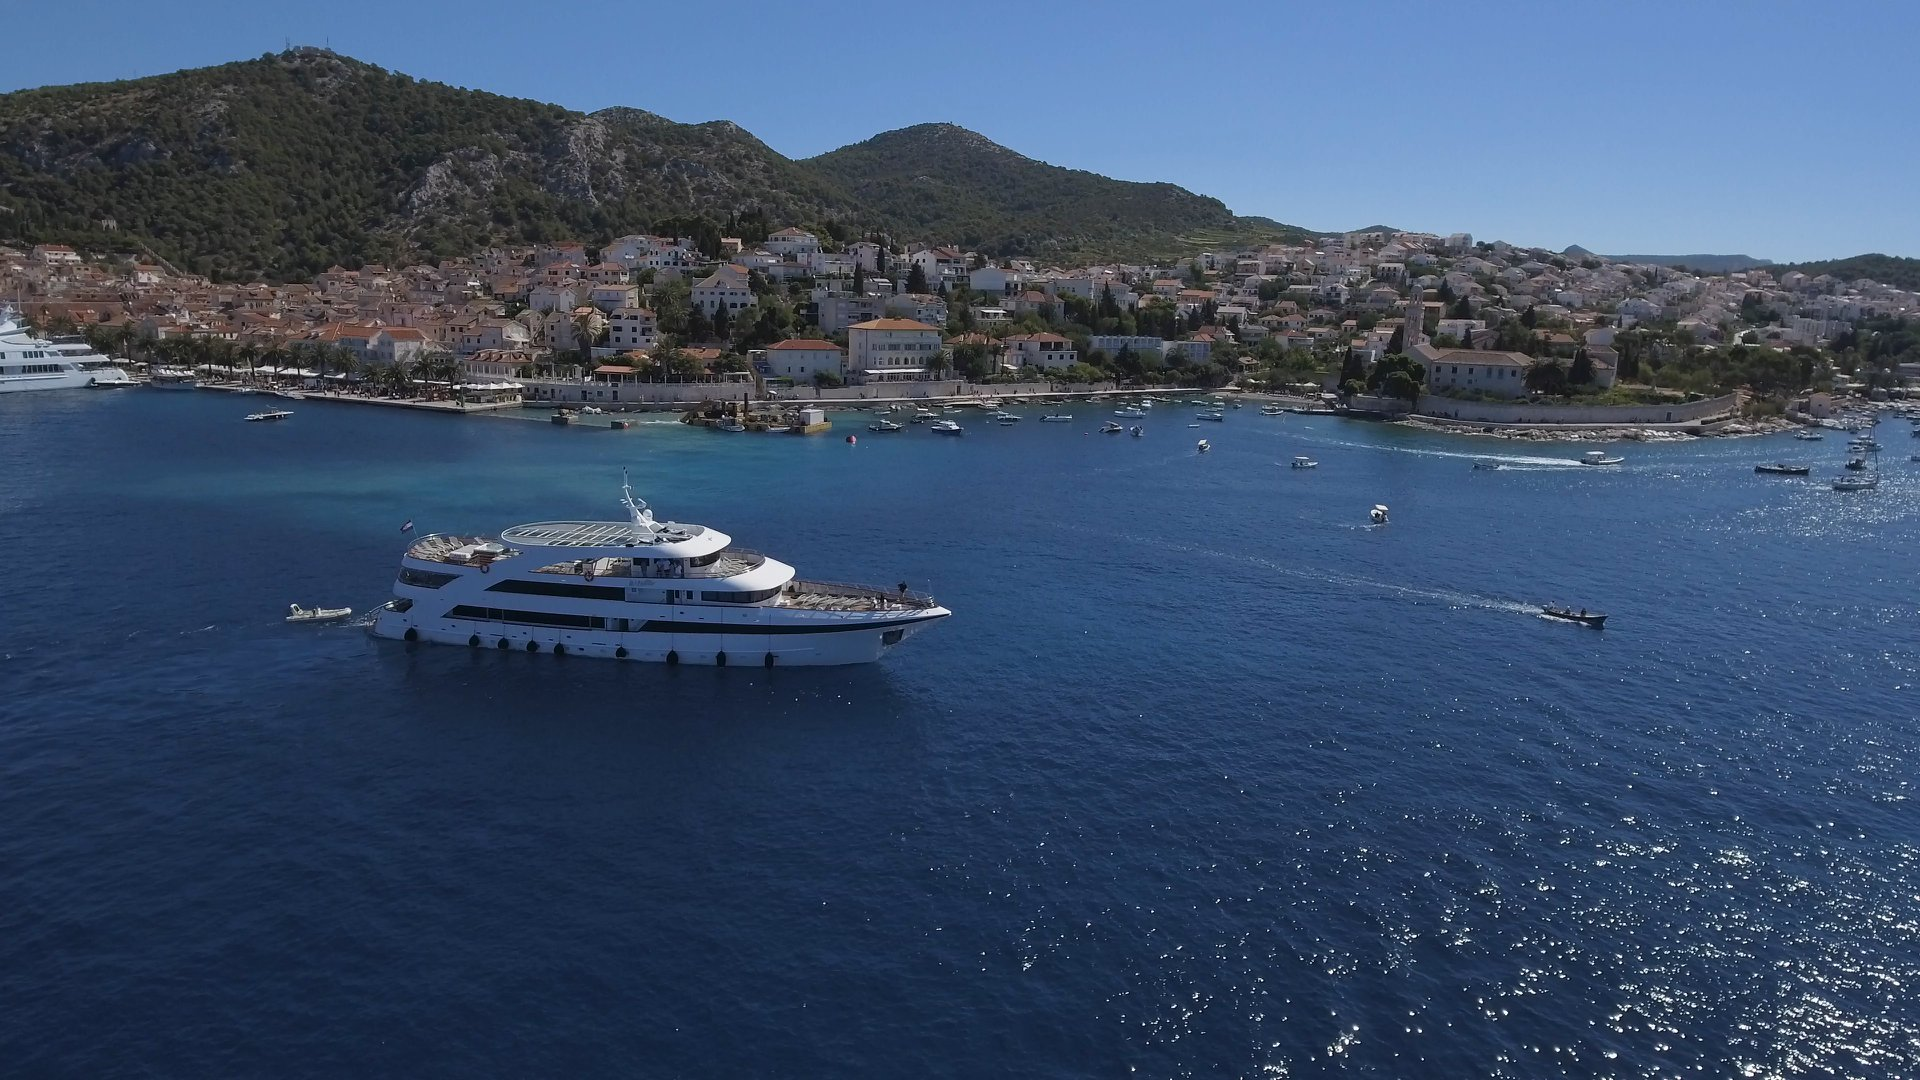 Adriatic Discovery Cruise from Dubrovnik to Split on Ban 12